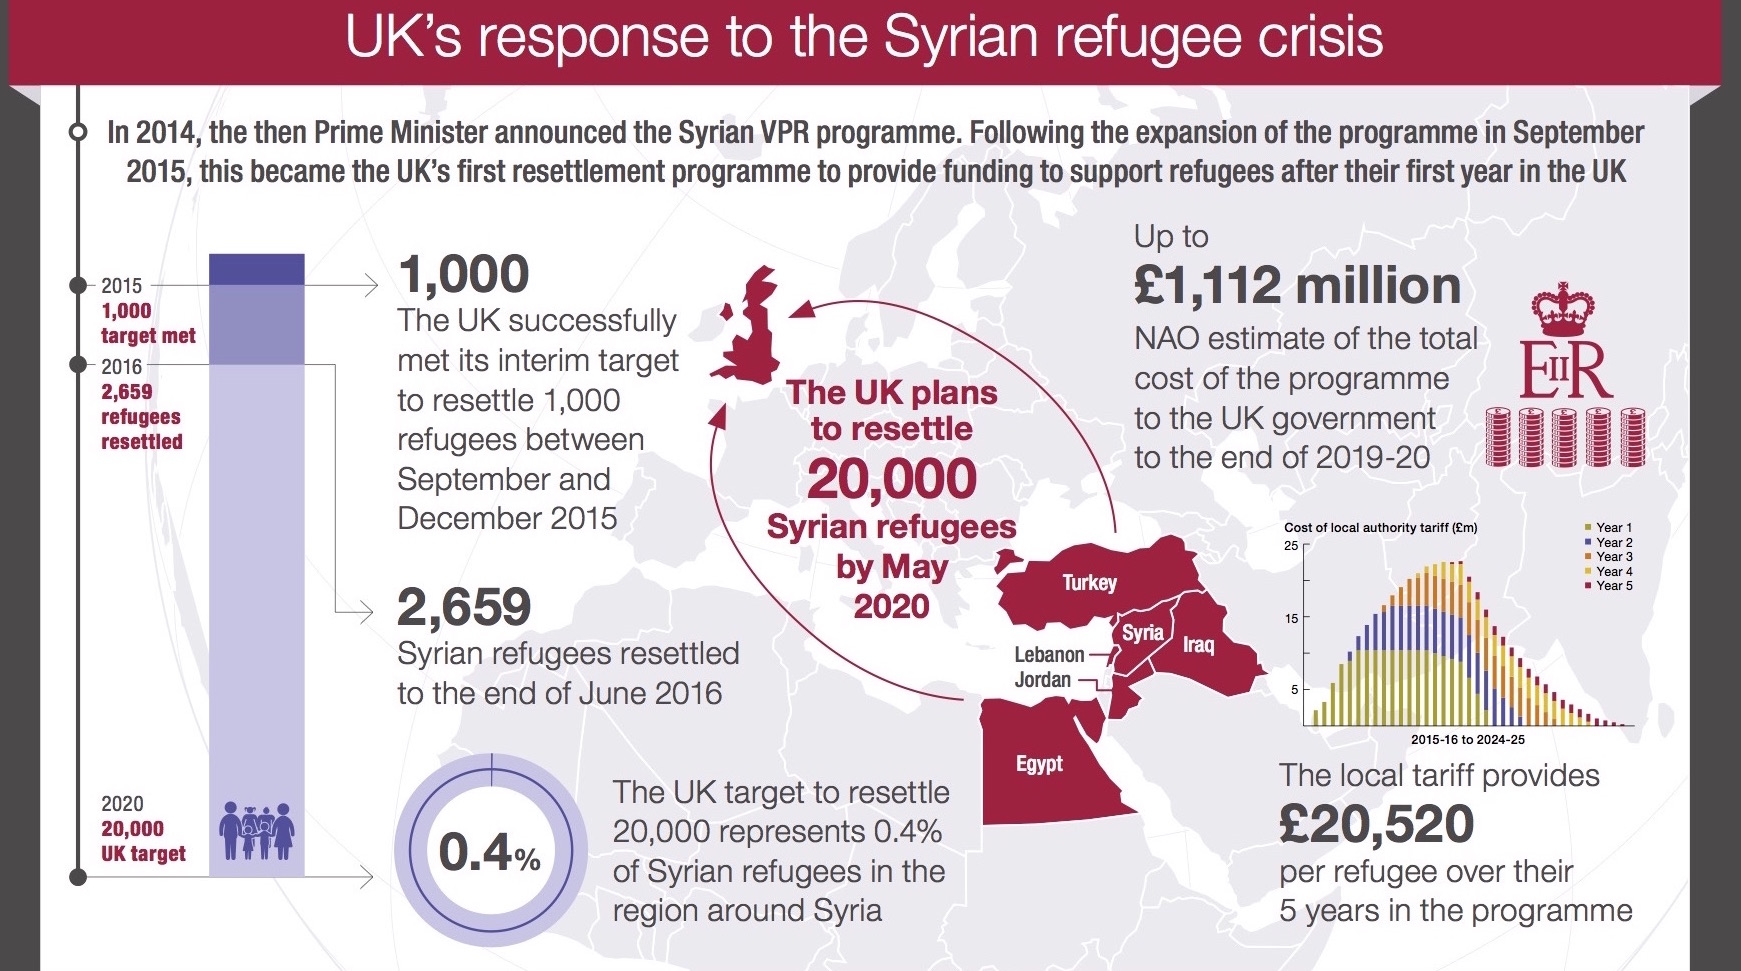 UK on target to resettle 20,000 Syrian refugees by 2020